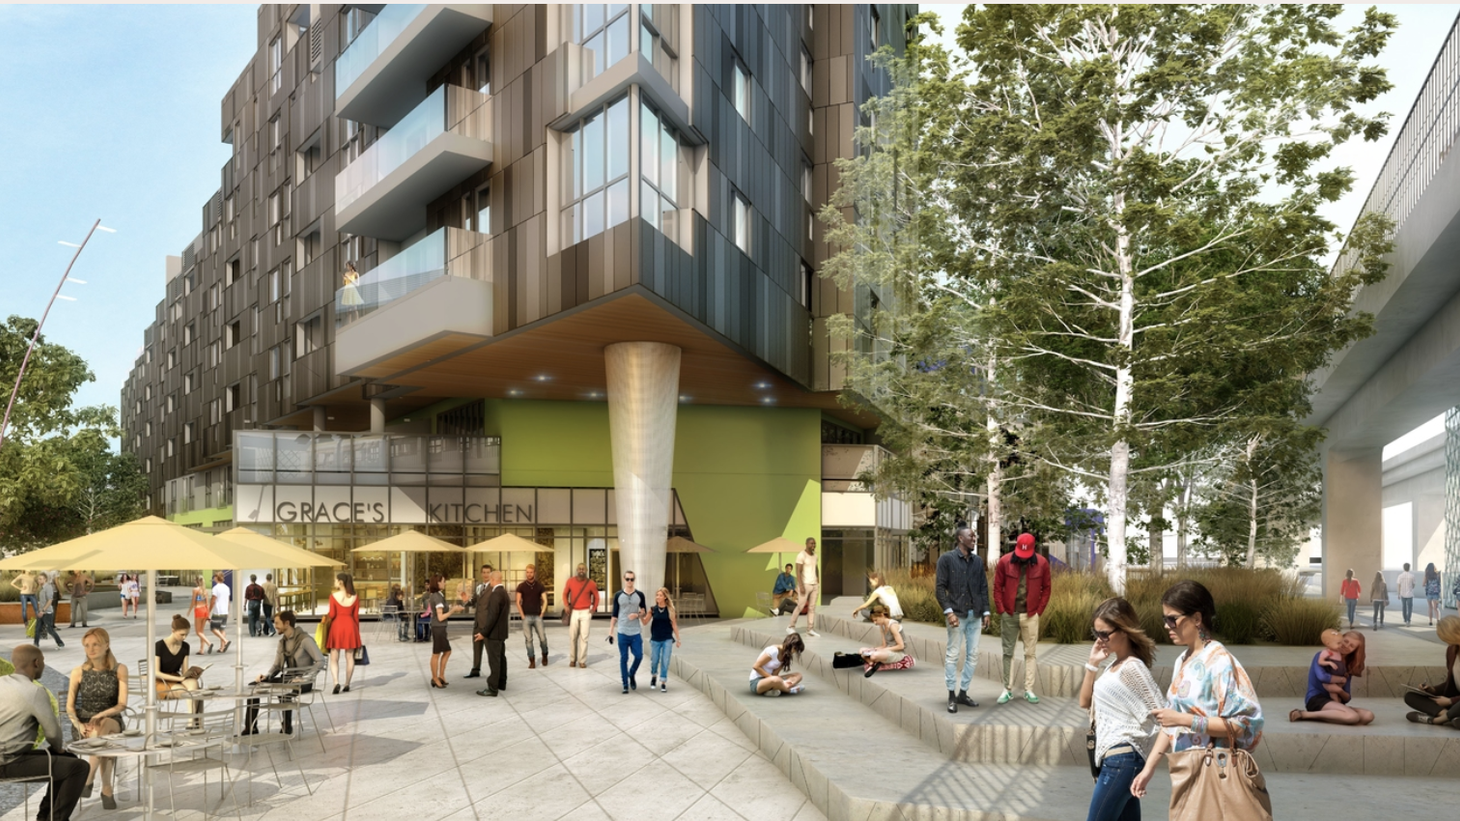 A rendering of Ivy Station, a mix of offices, hotel, bars and 200 market-rate apartments. It's right by the Culver City Expo Line station. It's an example of transit-oriented development — aimed at providing more housing and stopping sprawl and car dependency.